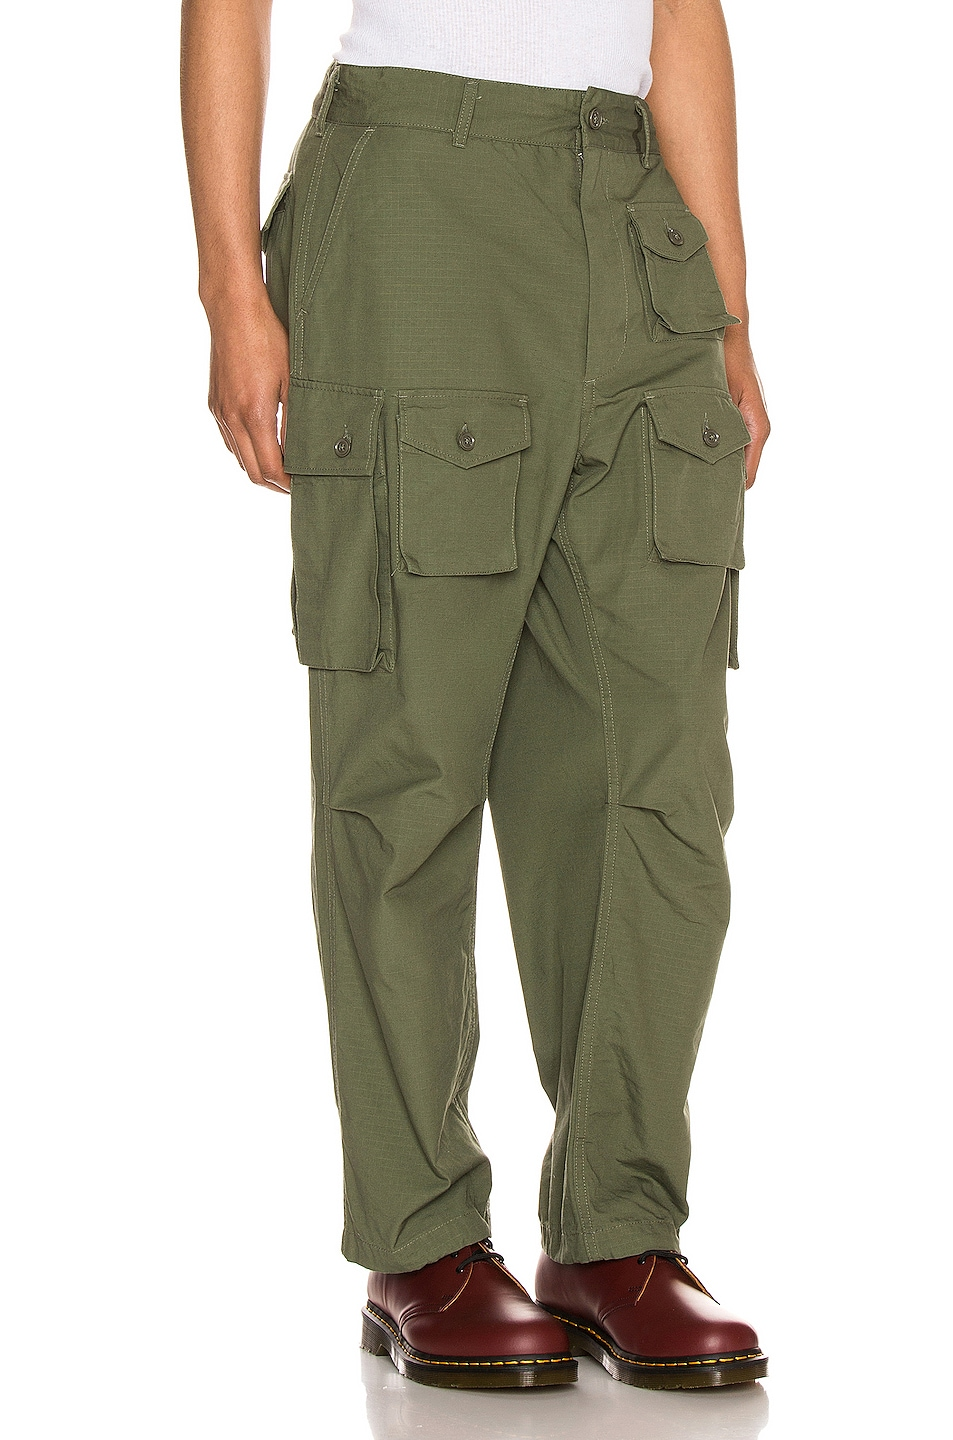 Image 3 of Engineered Garments FA Pant in Olive Cotton Ripstop